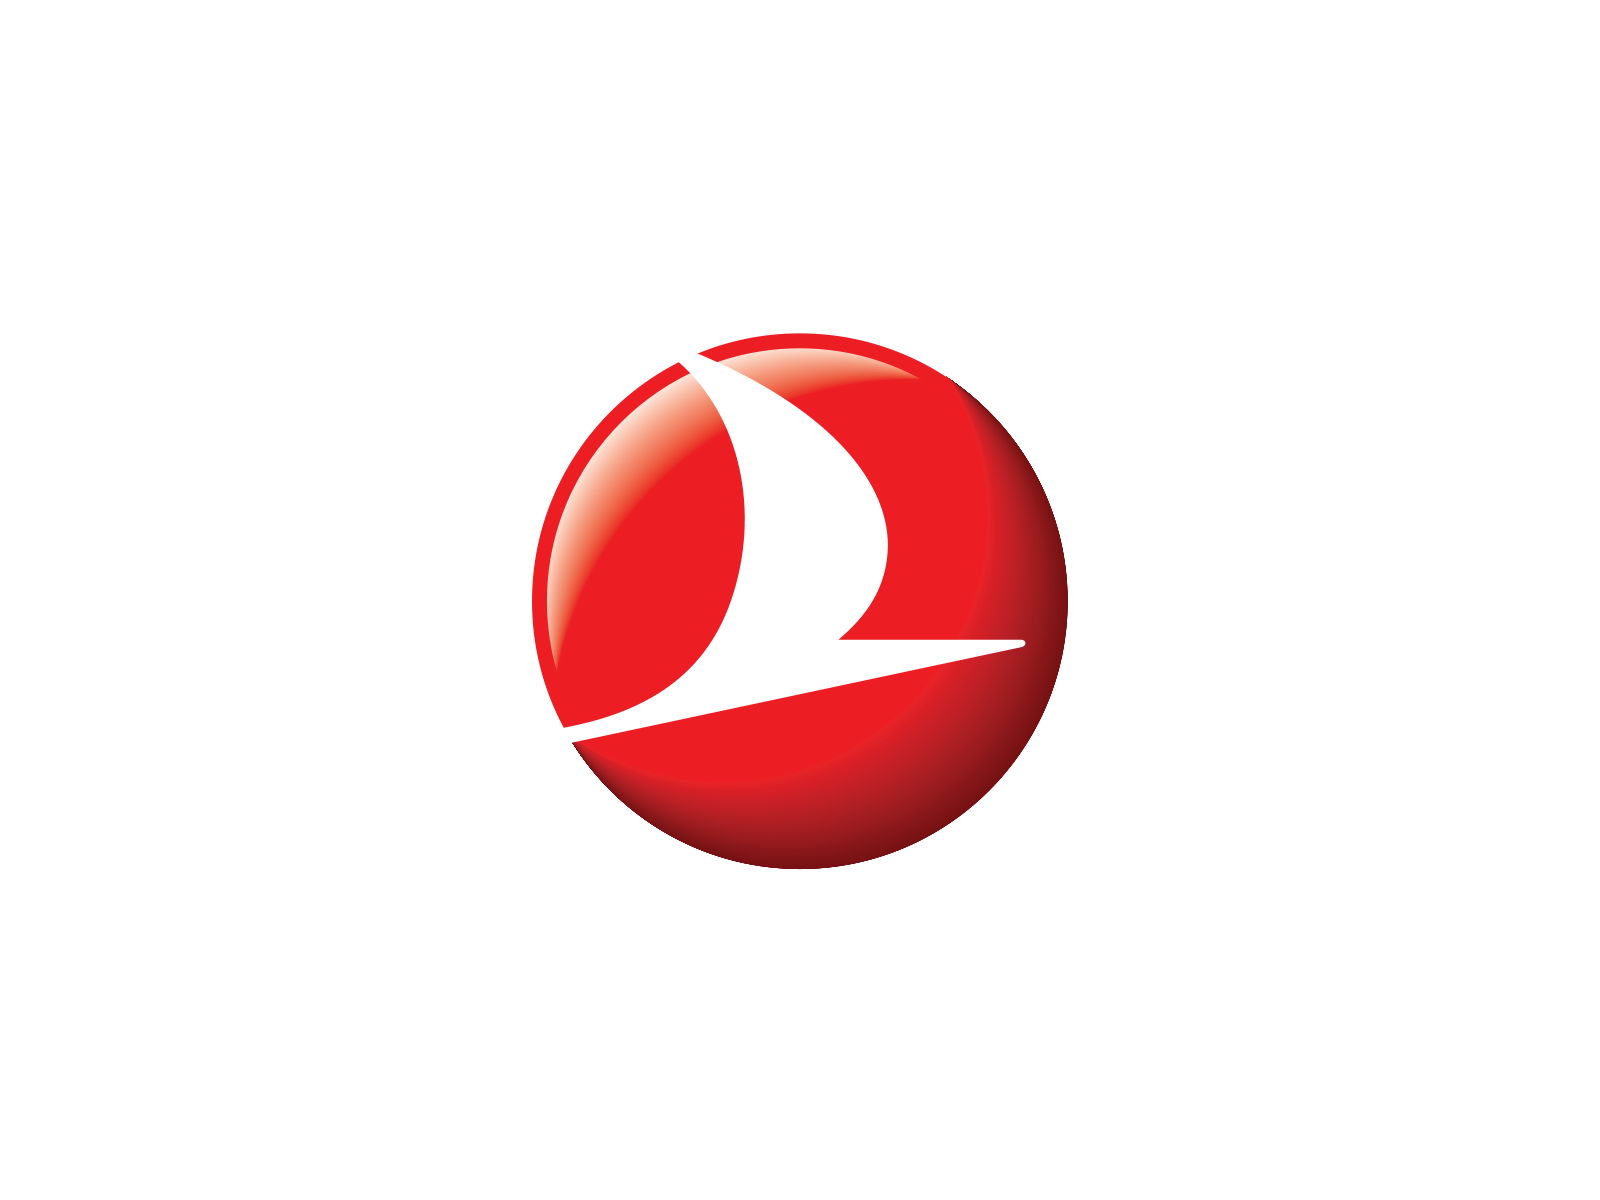 Turkey flag clipart jpg library library Established in 1933, Turkish Airlines is the national flag carrier ... jpg library library